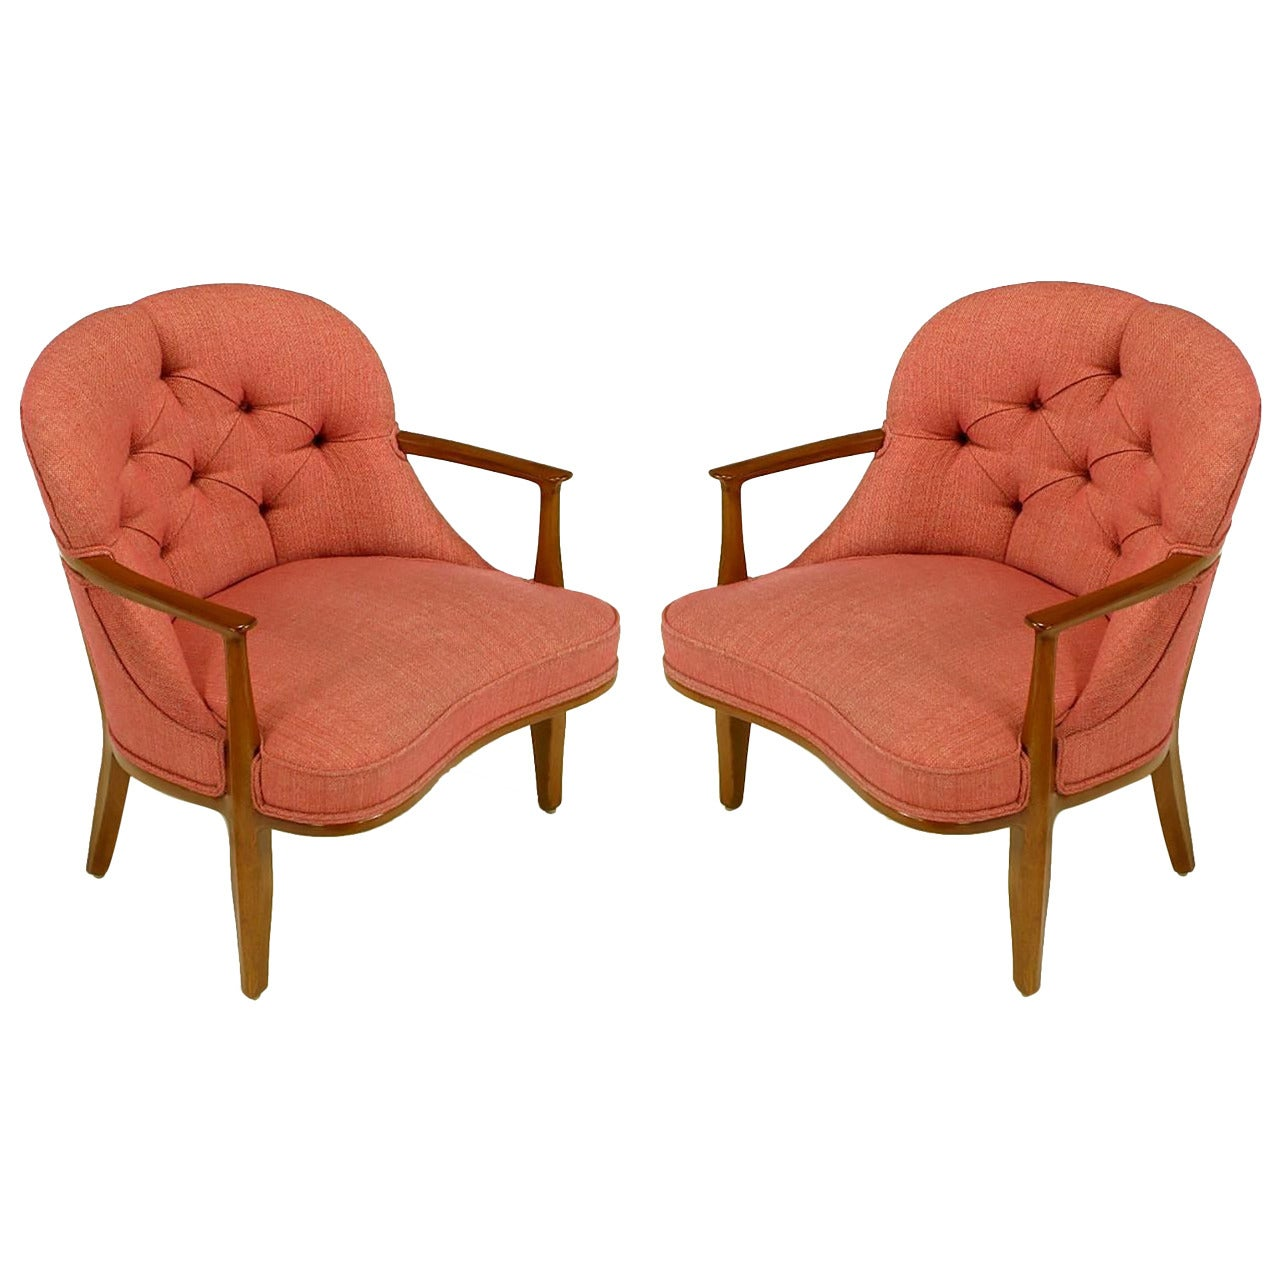 Pair of Edward Wormley Janus Collection Lounge Chairs by Dunbar